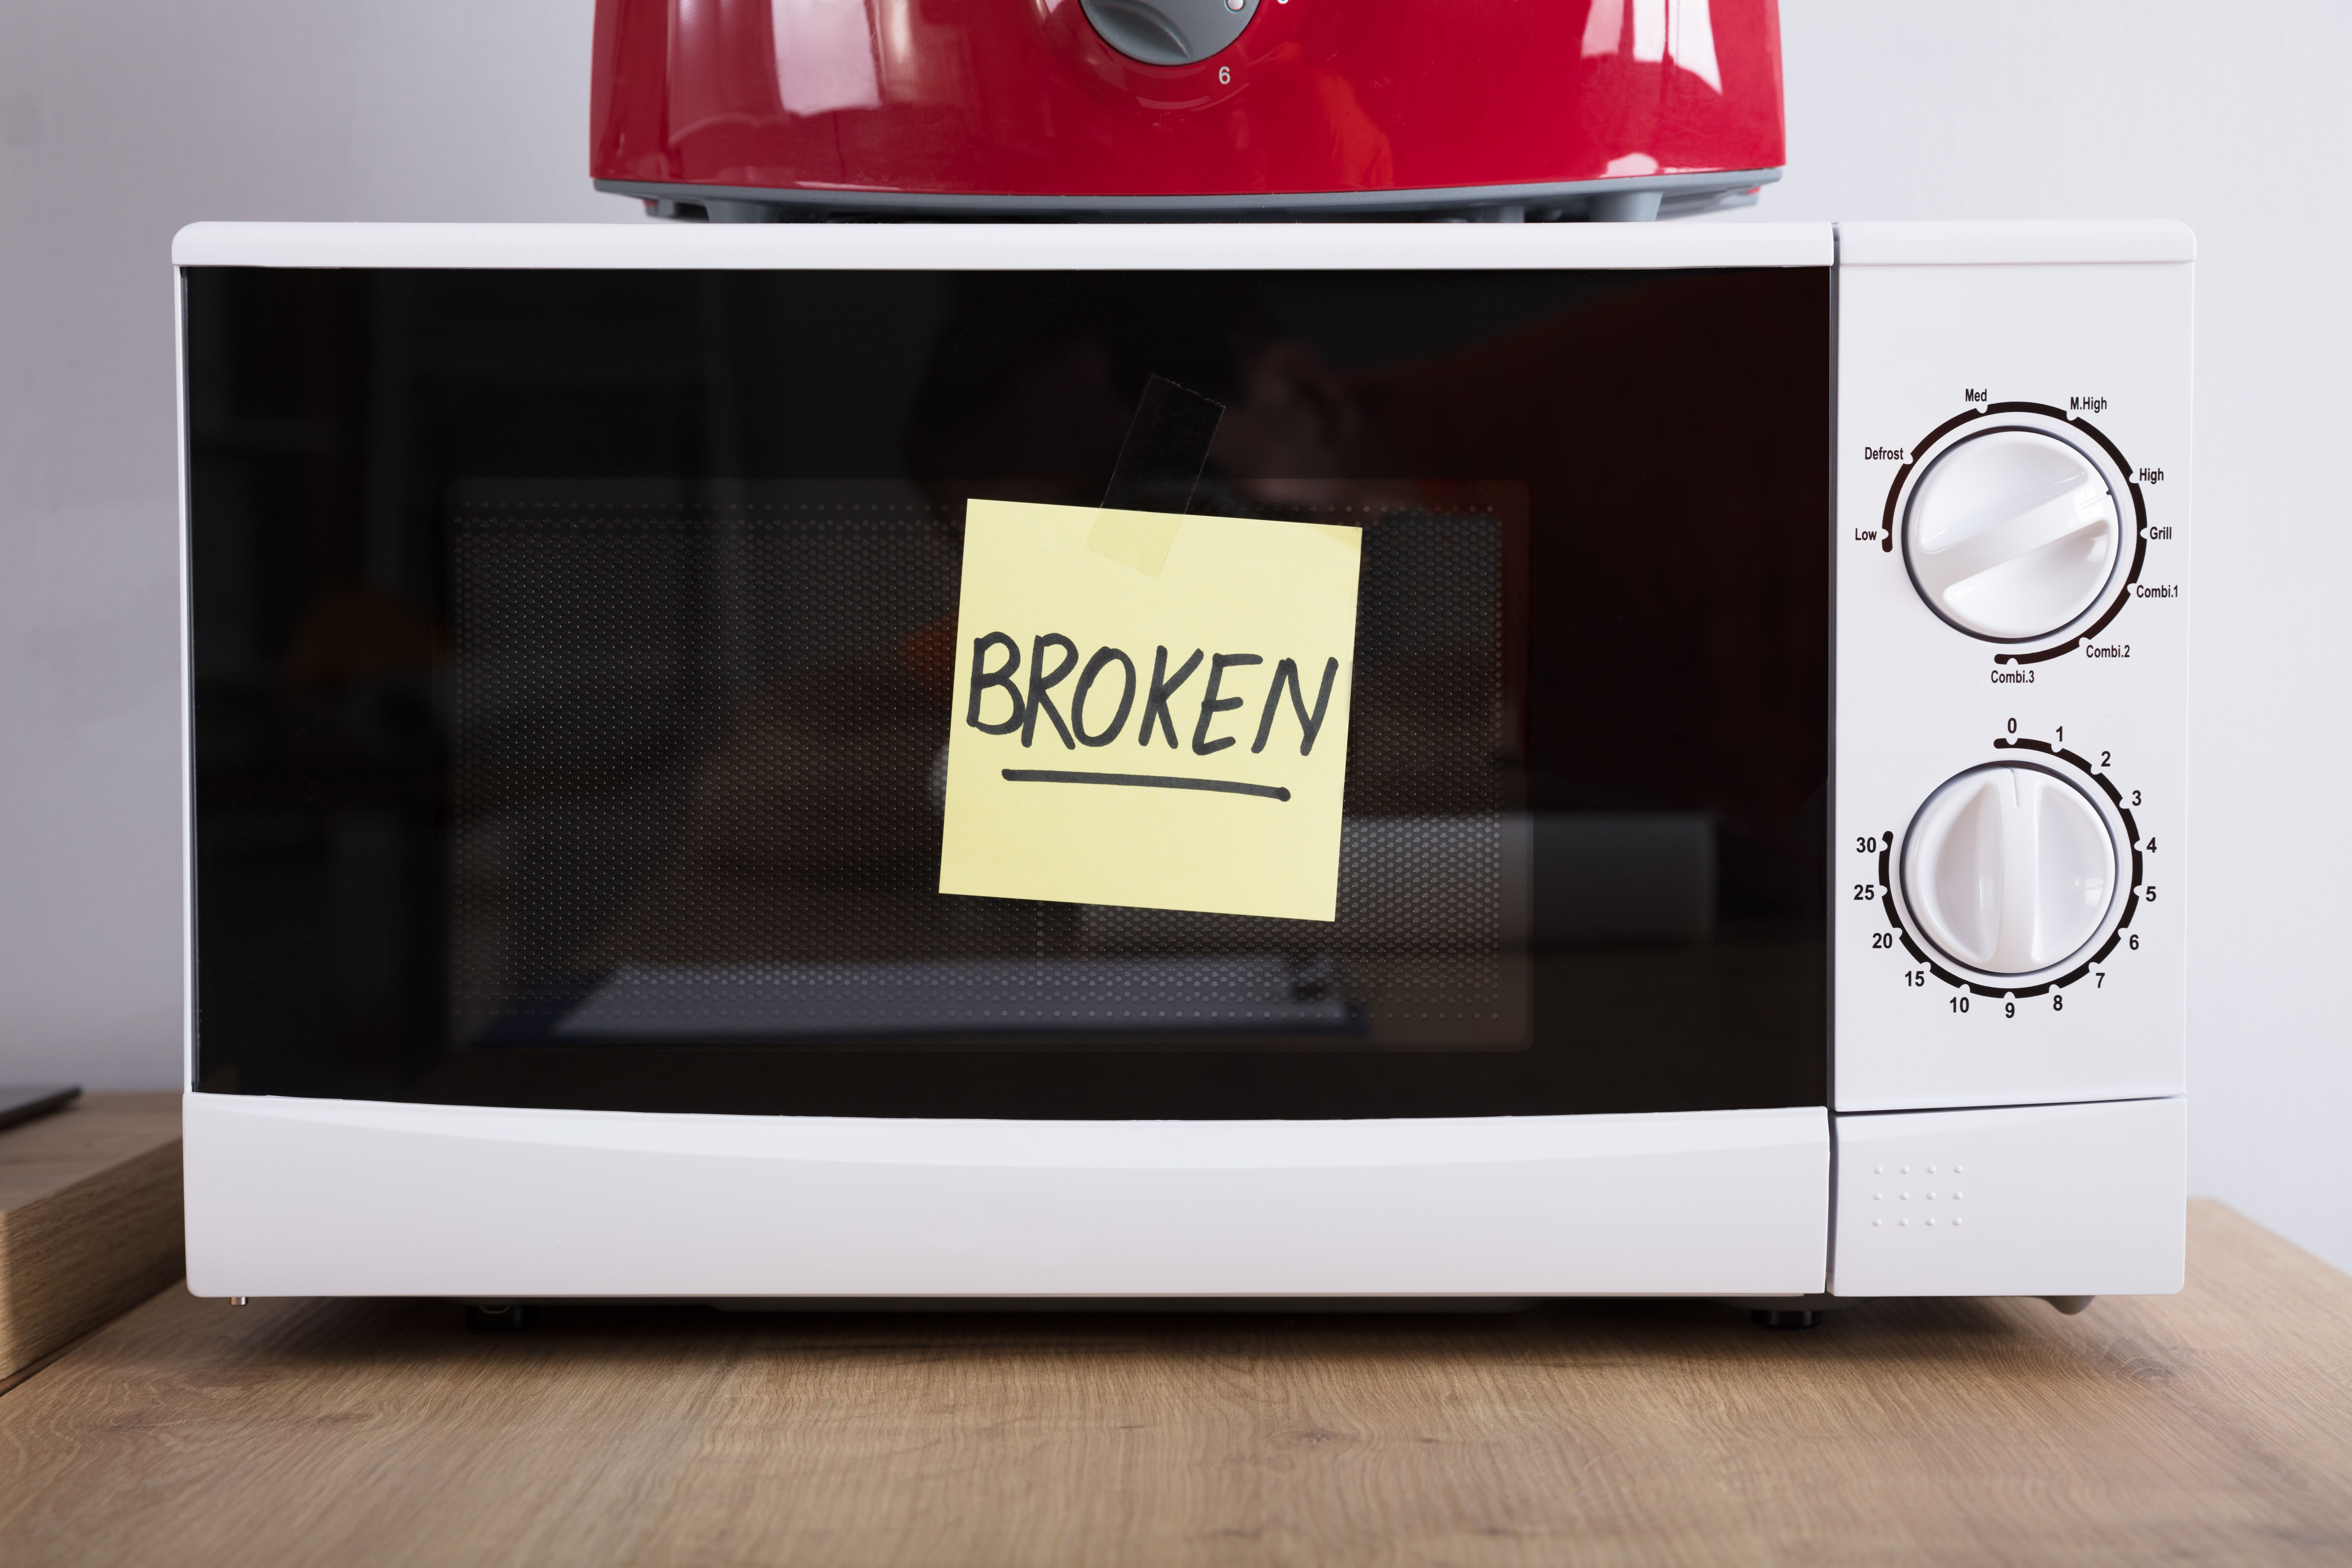 9 microwave problems you ll regret ignoring microwave problems appliance repair microwave